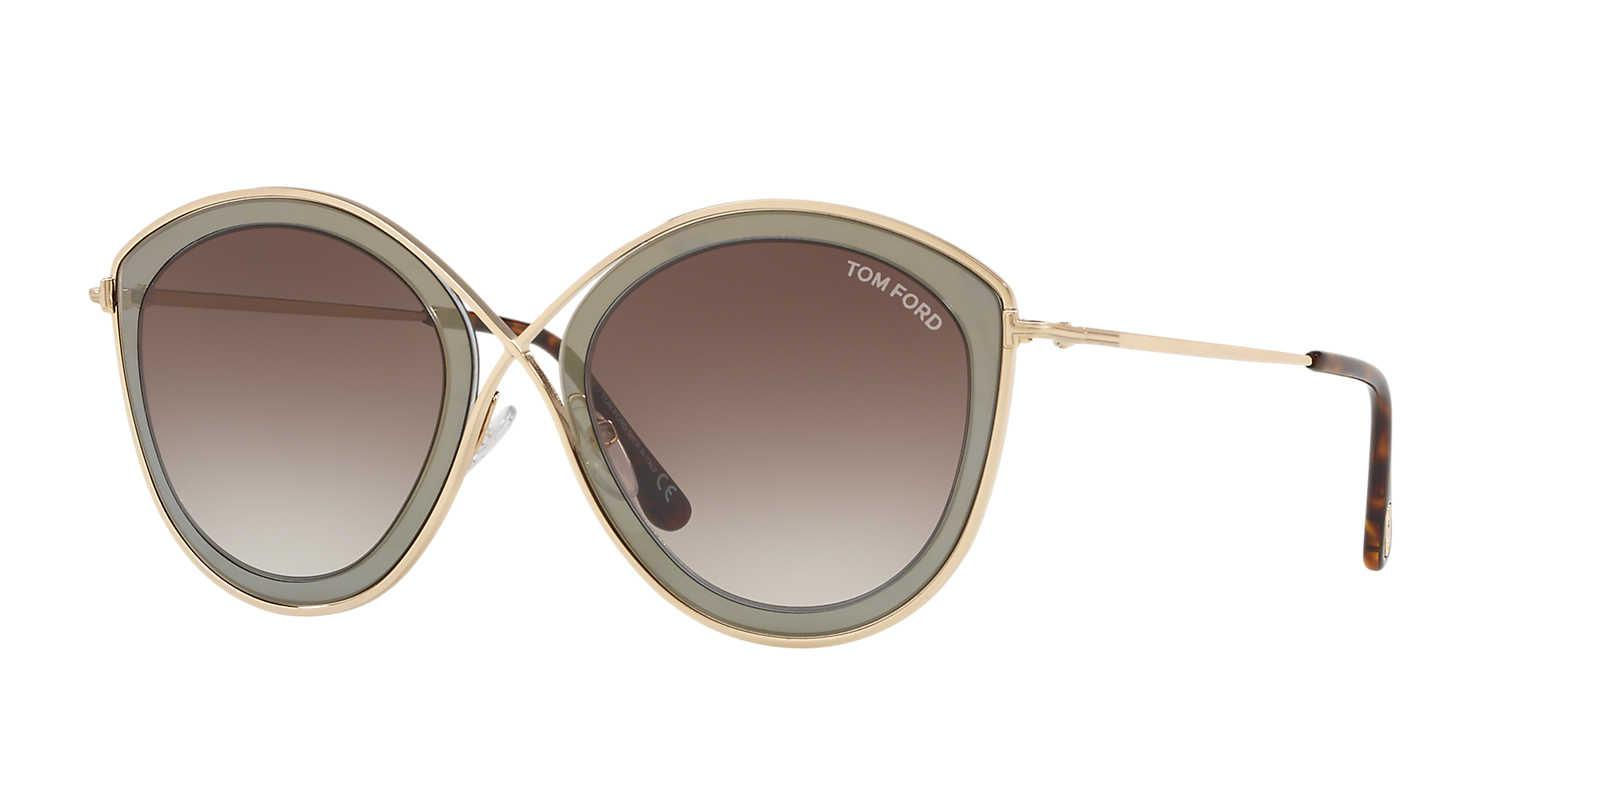 54986ef35cf9 Tom Ford Sunglass Ft0604 55 in Gray - Lyst